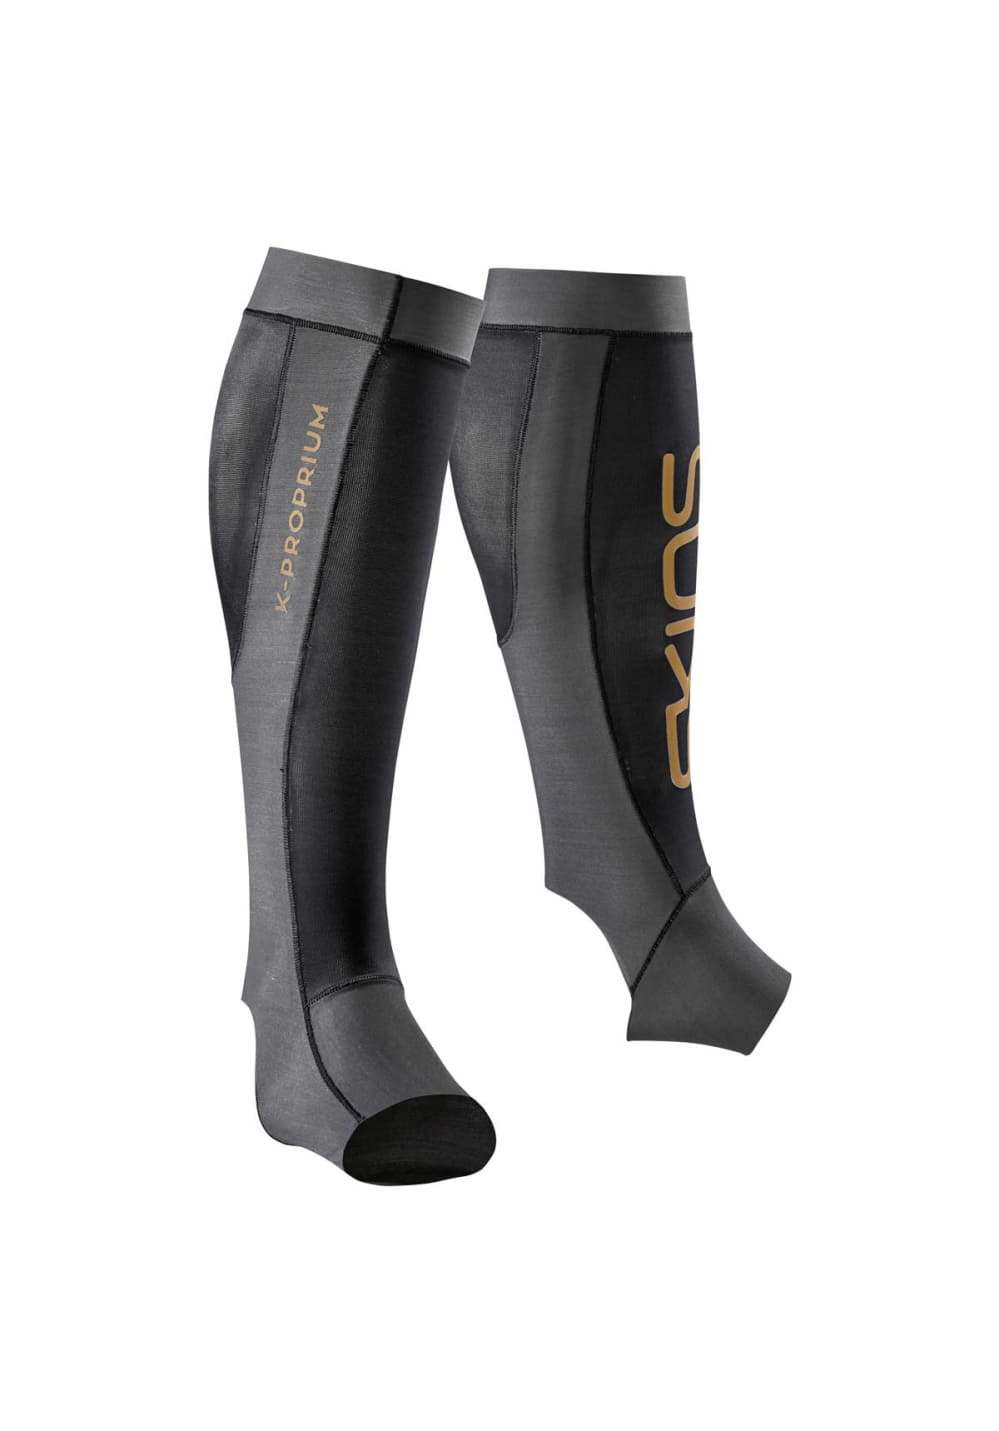 Skins K-proprium-calf Tights Kompression - Grau